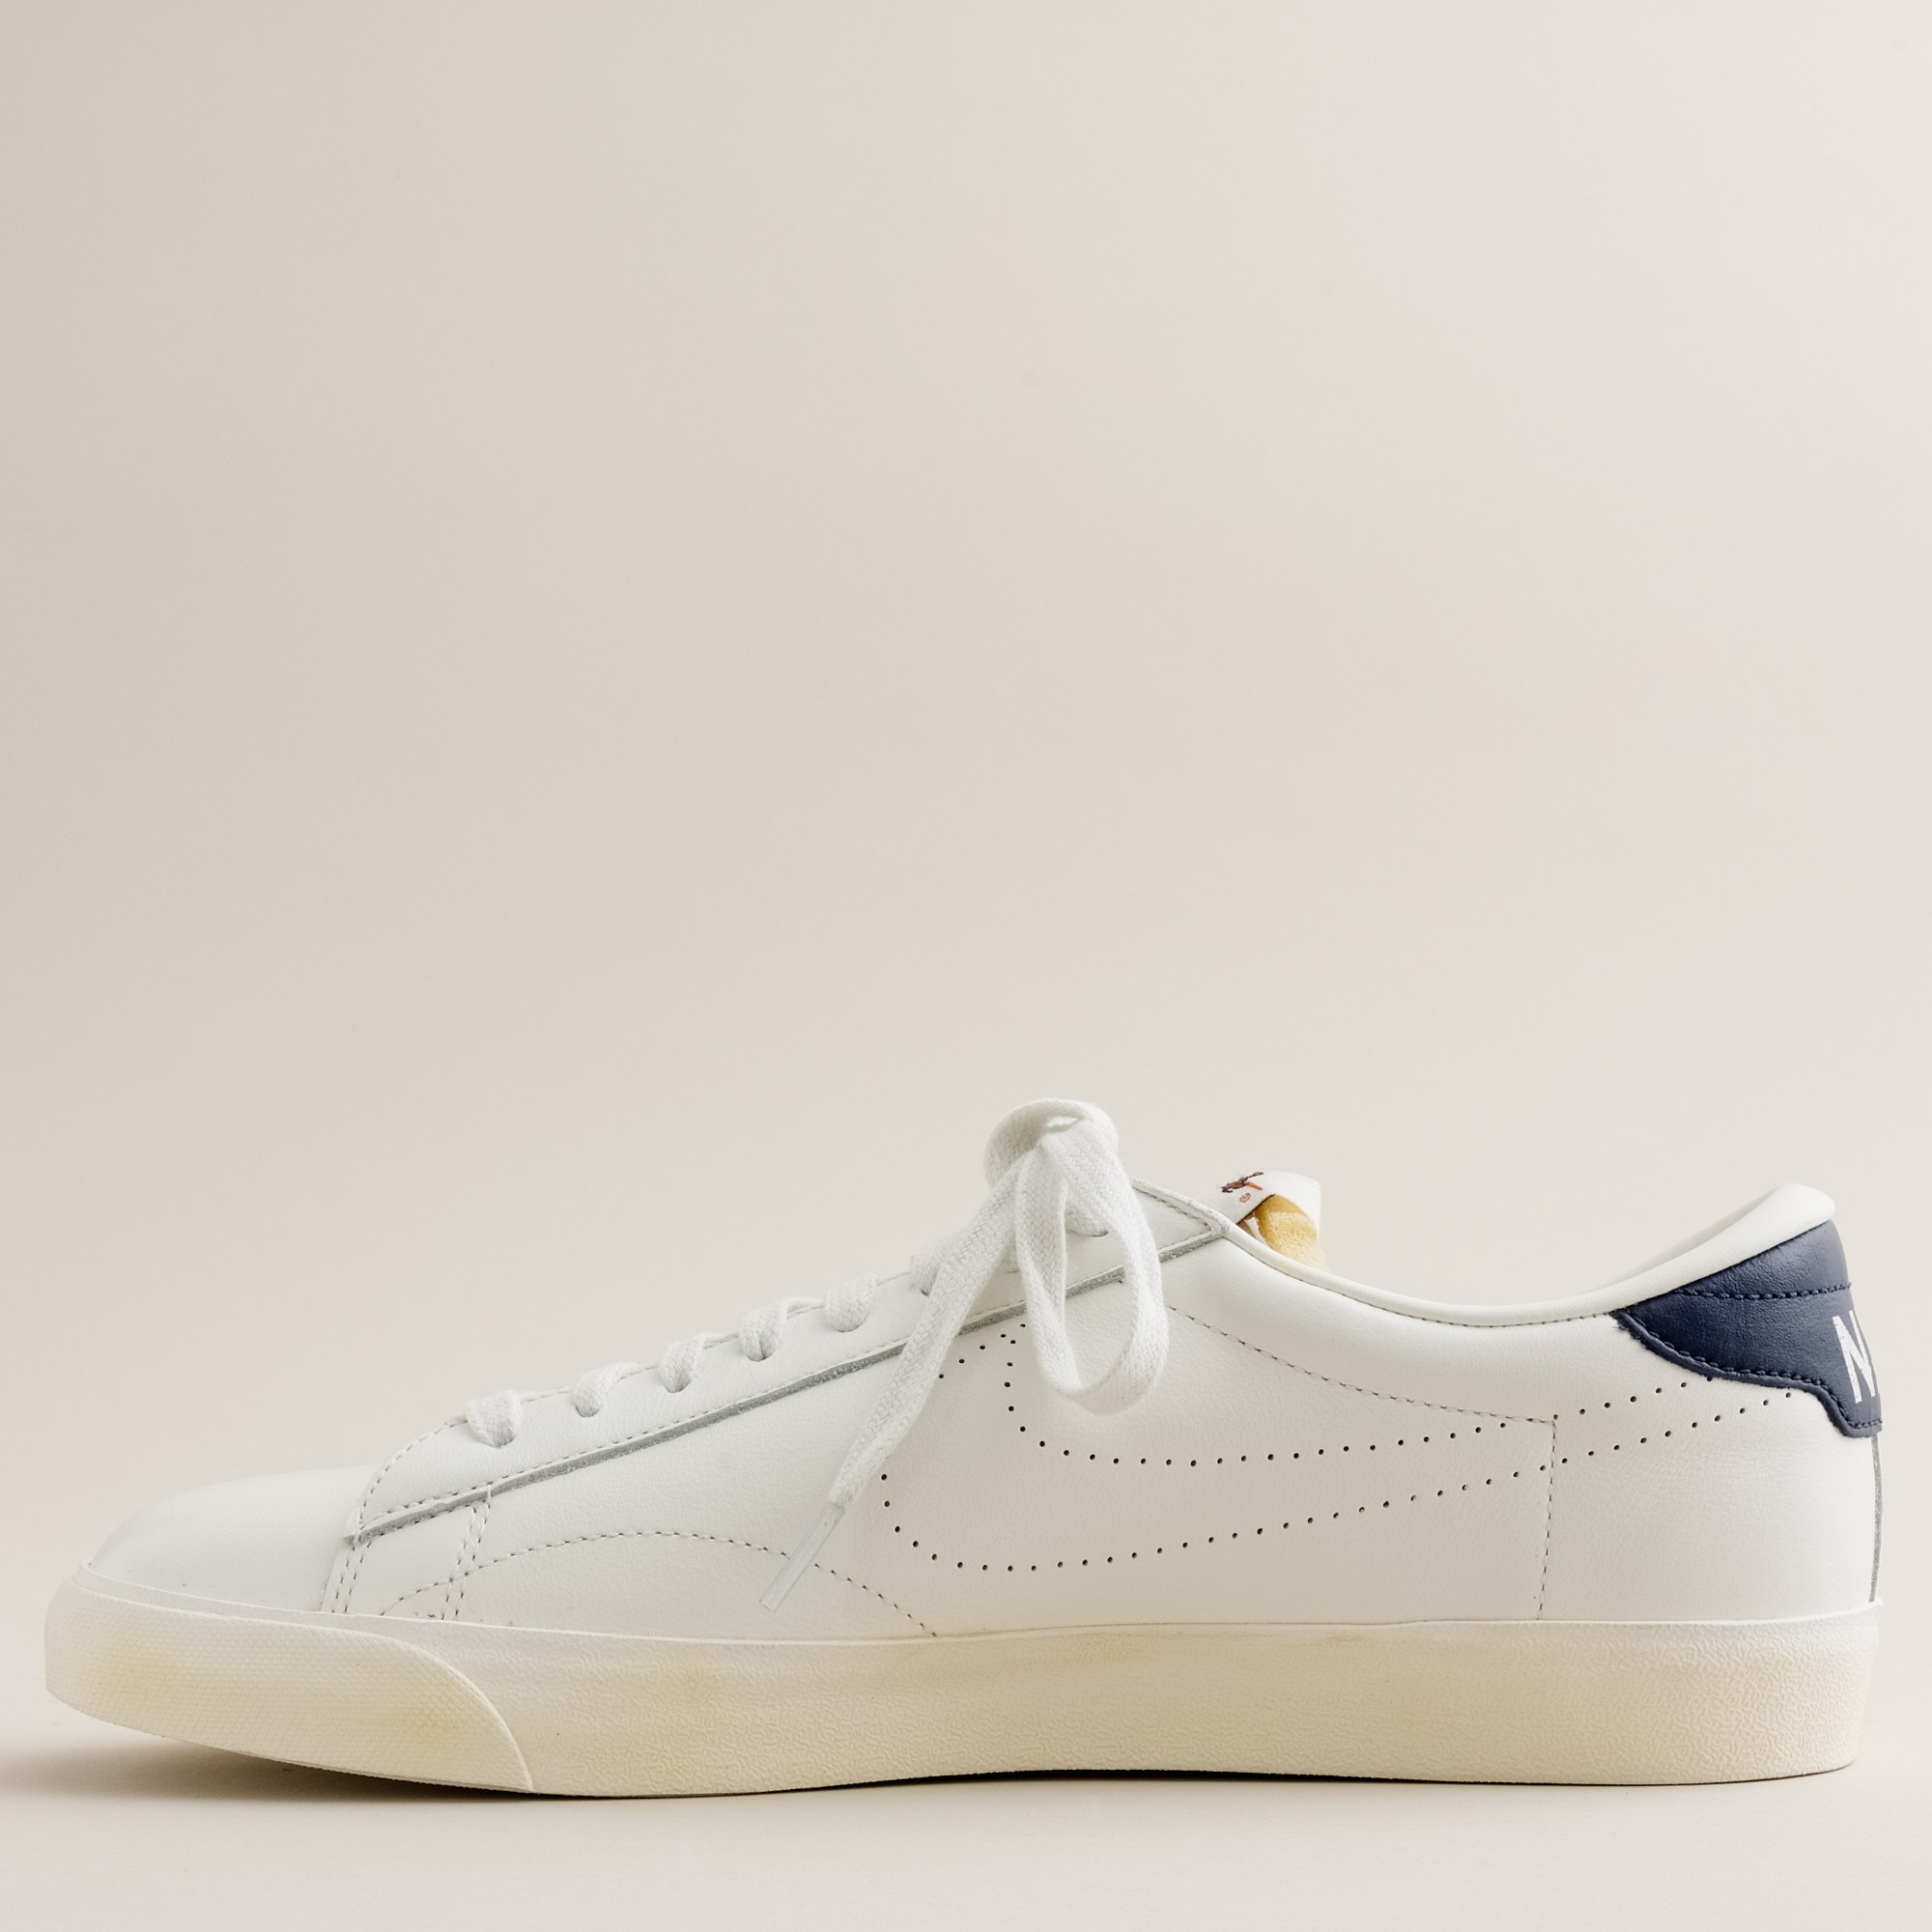 Lyst - J.Crew Nike® For J.crew Vintage Collection Leather Tennis ... e8f22f1ab7